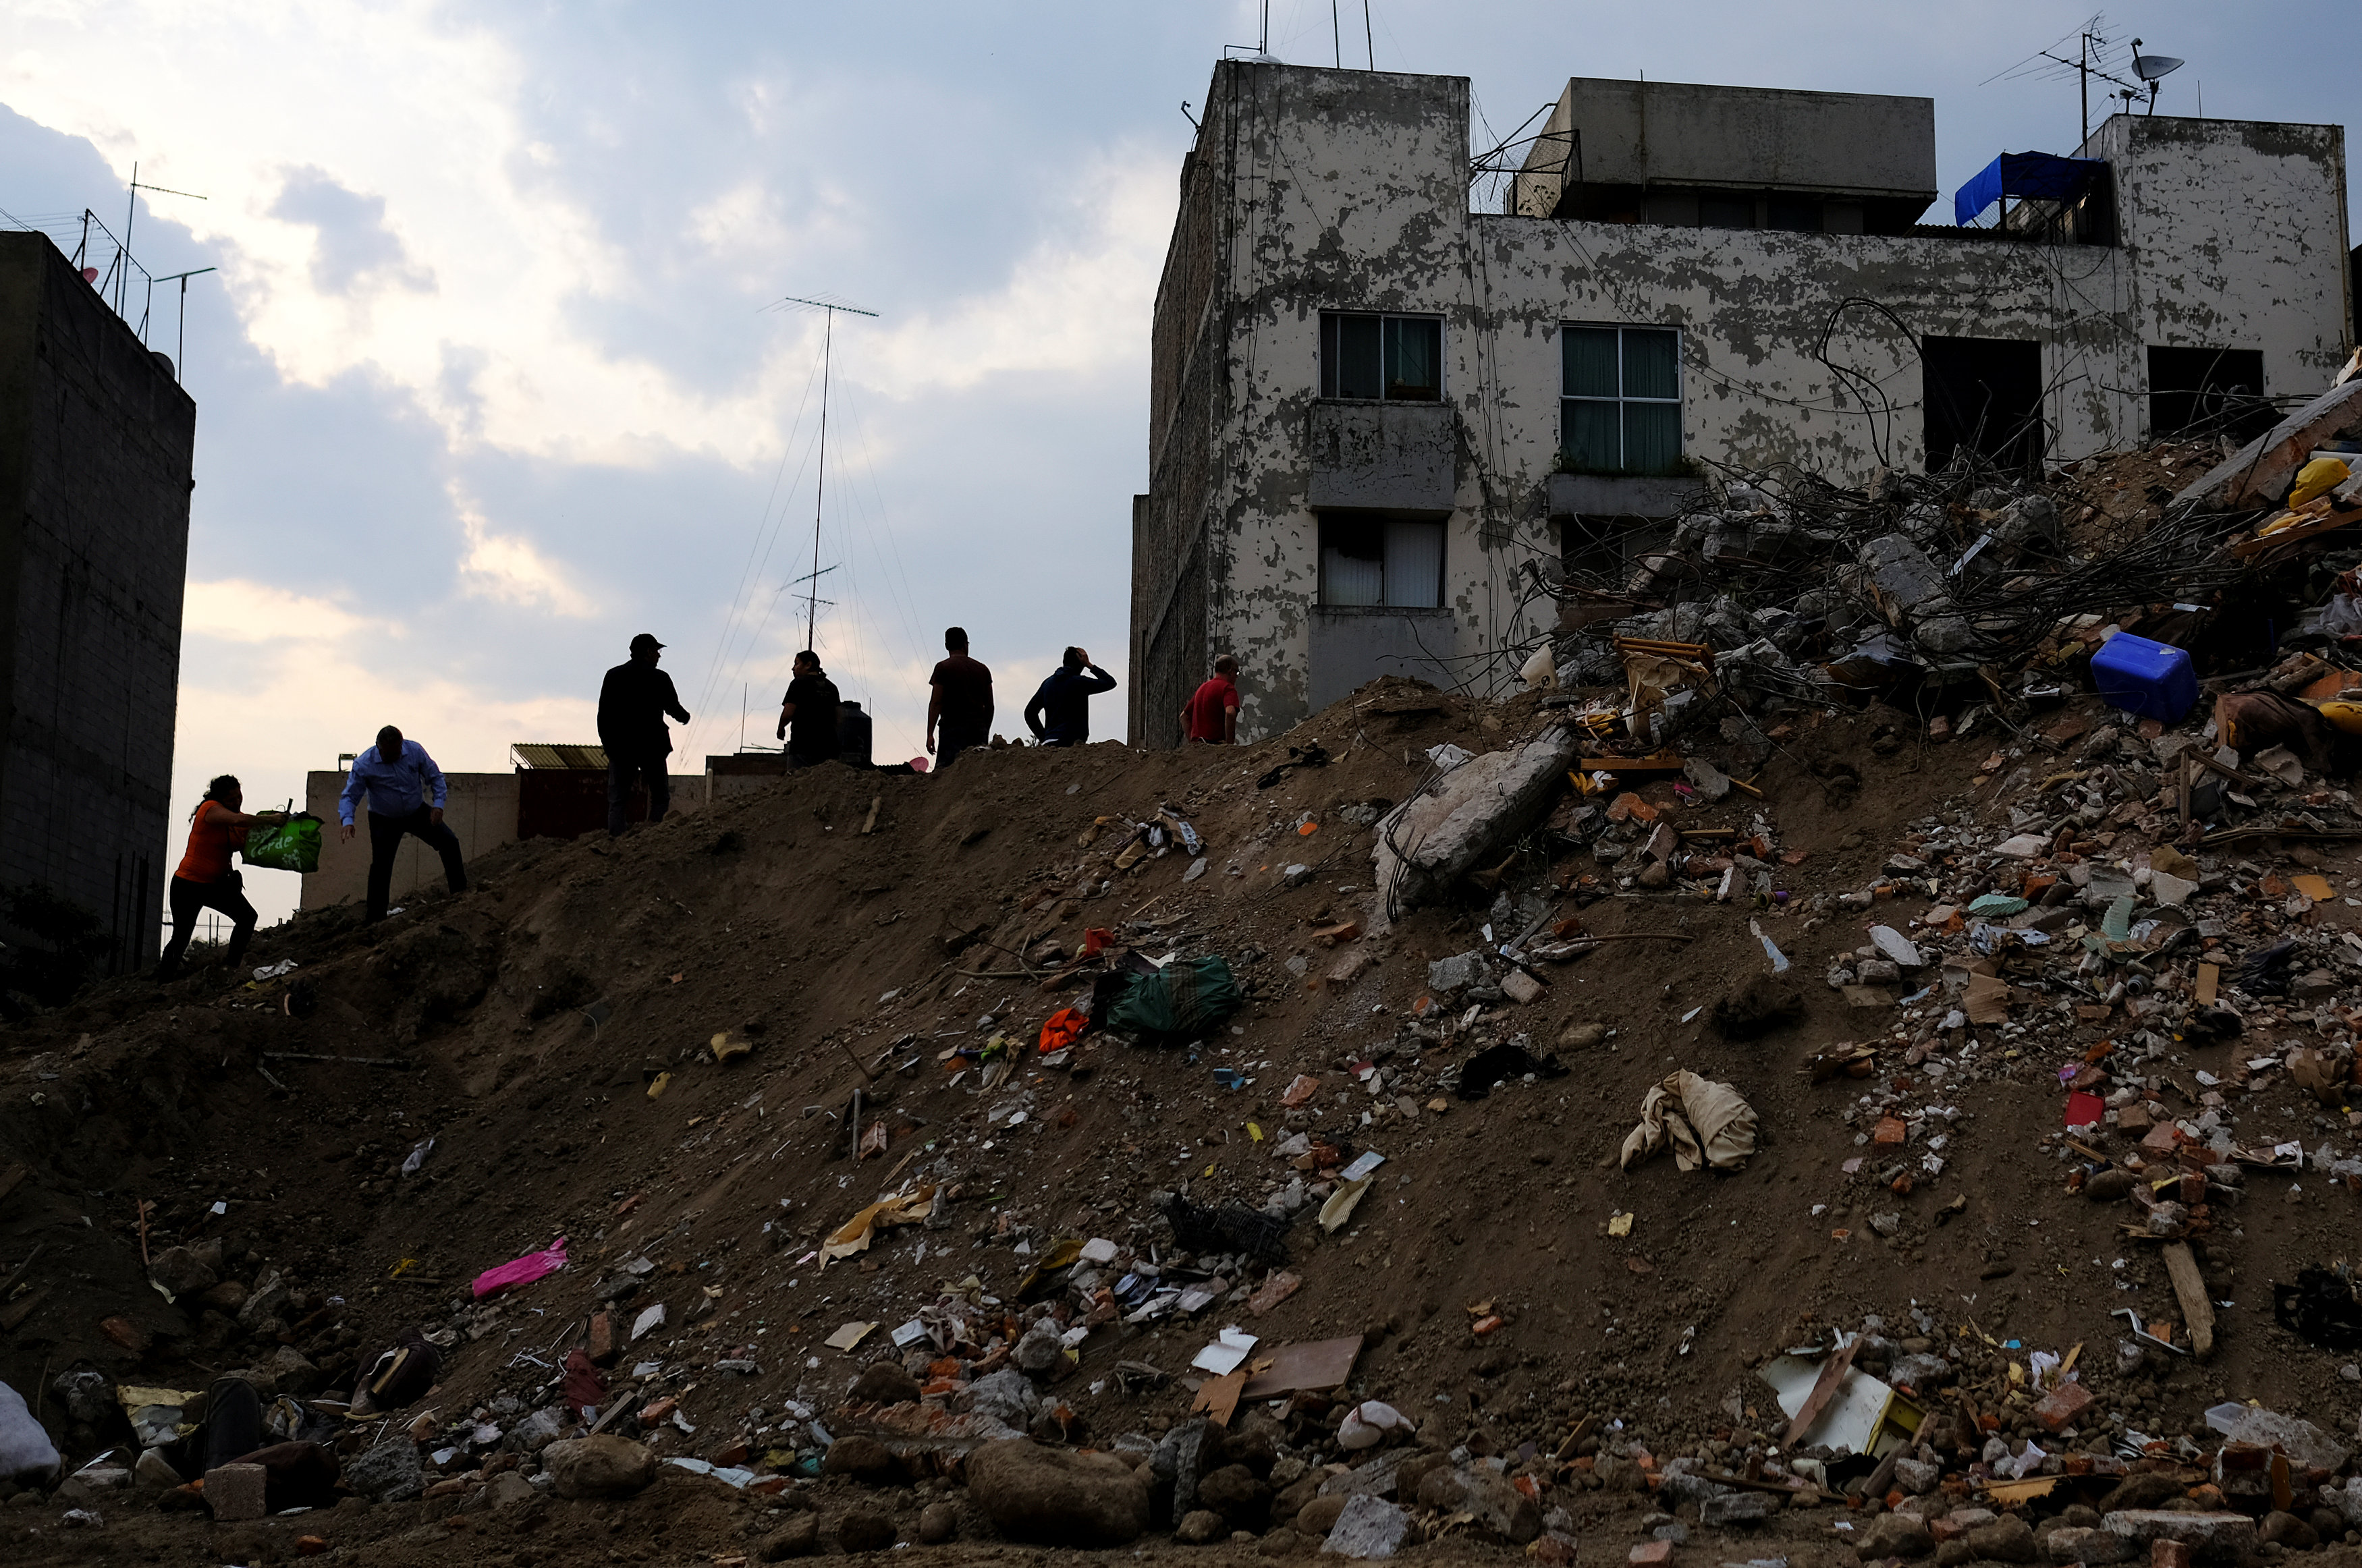 Residents carry their belongings from their homes in the rubble of a collapsed building at Iztapalapa neighbourhood, after an earthquake in Mexico City, Mexico September 26, 2017. REUTERS/Nacho Doce